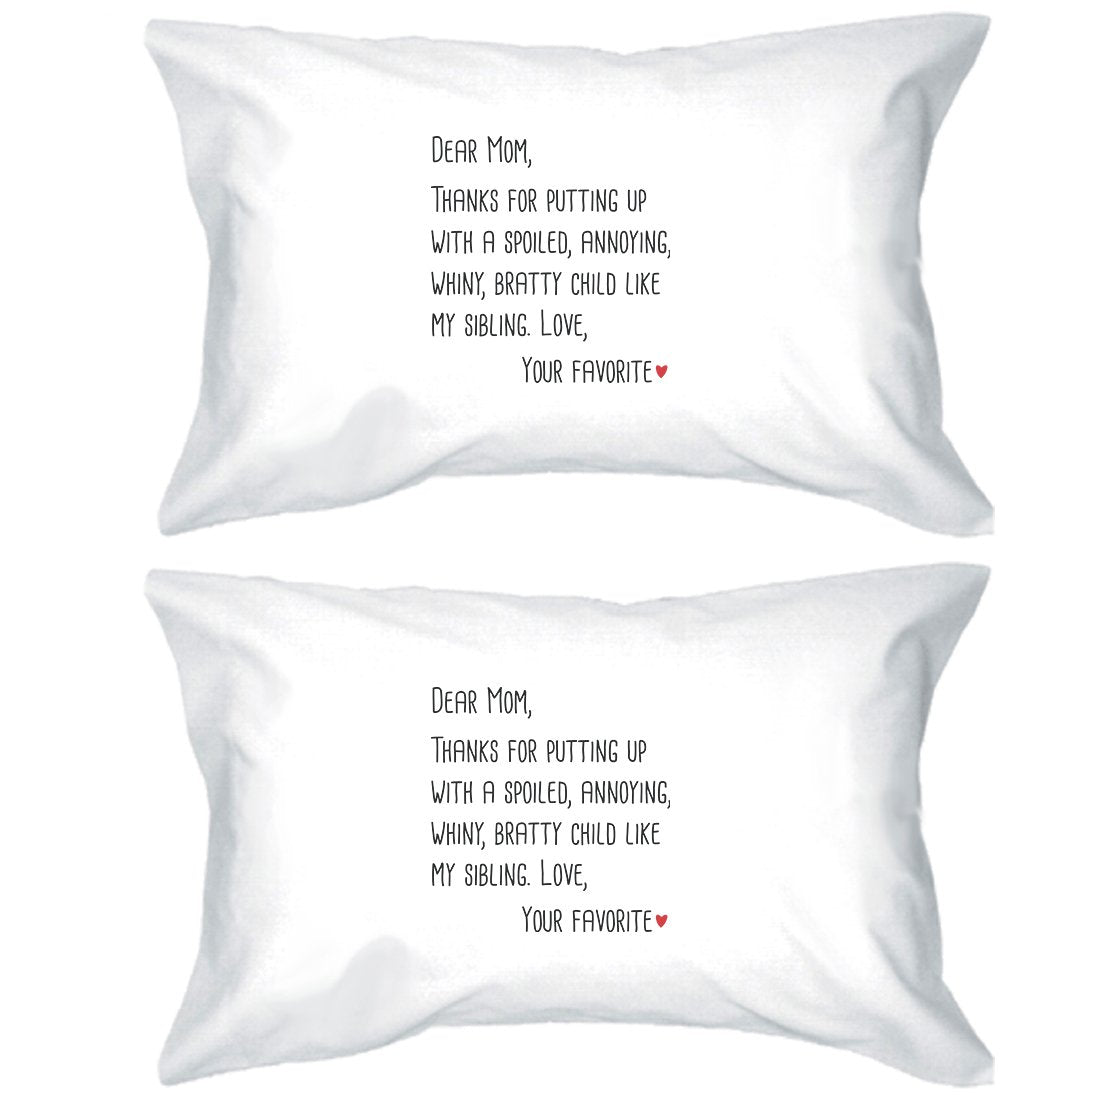 Dear Mom Graphic Pillowcases Standard Size Cotton Pillow Covers